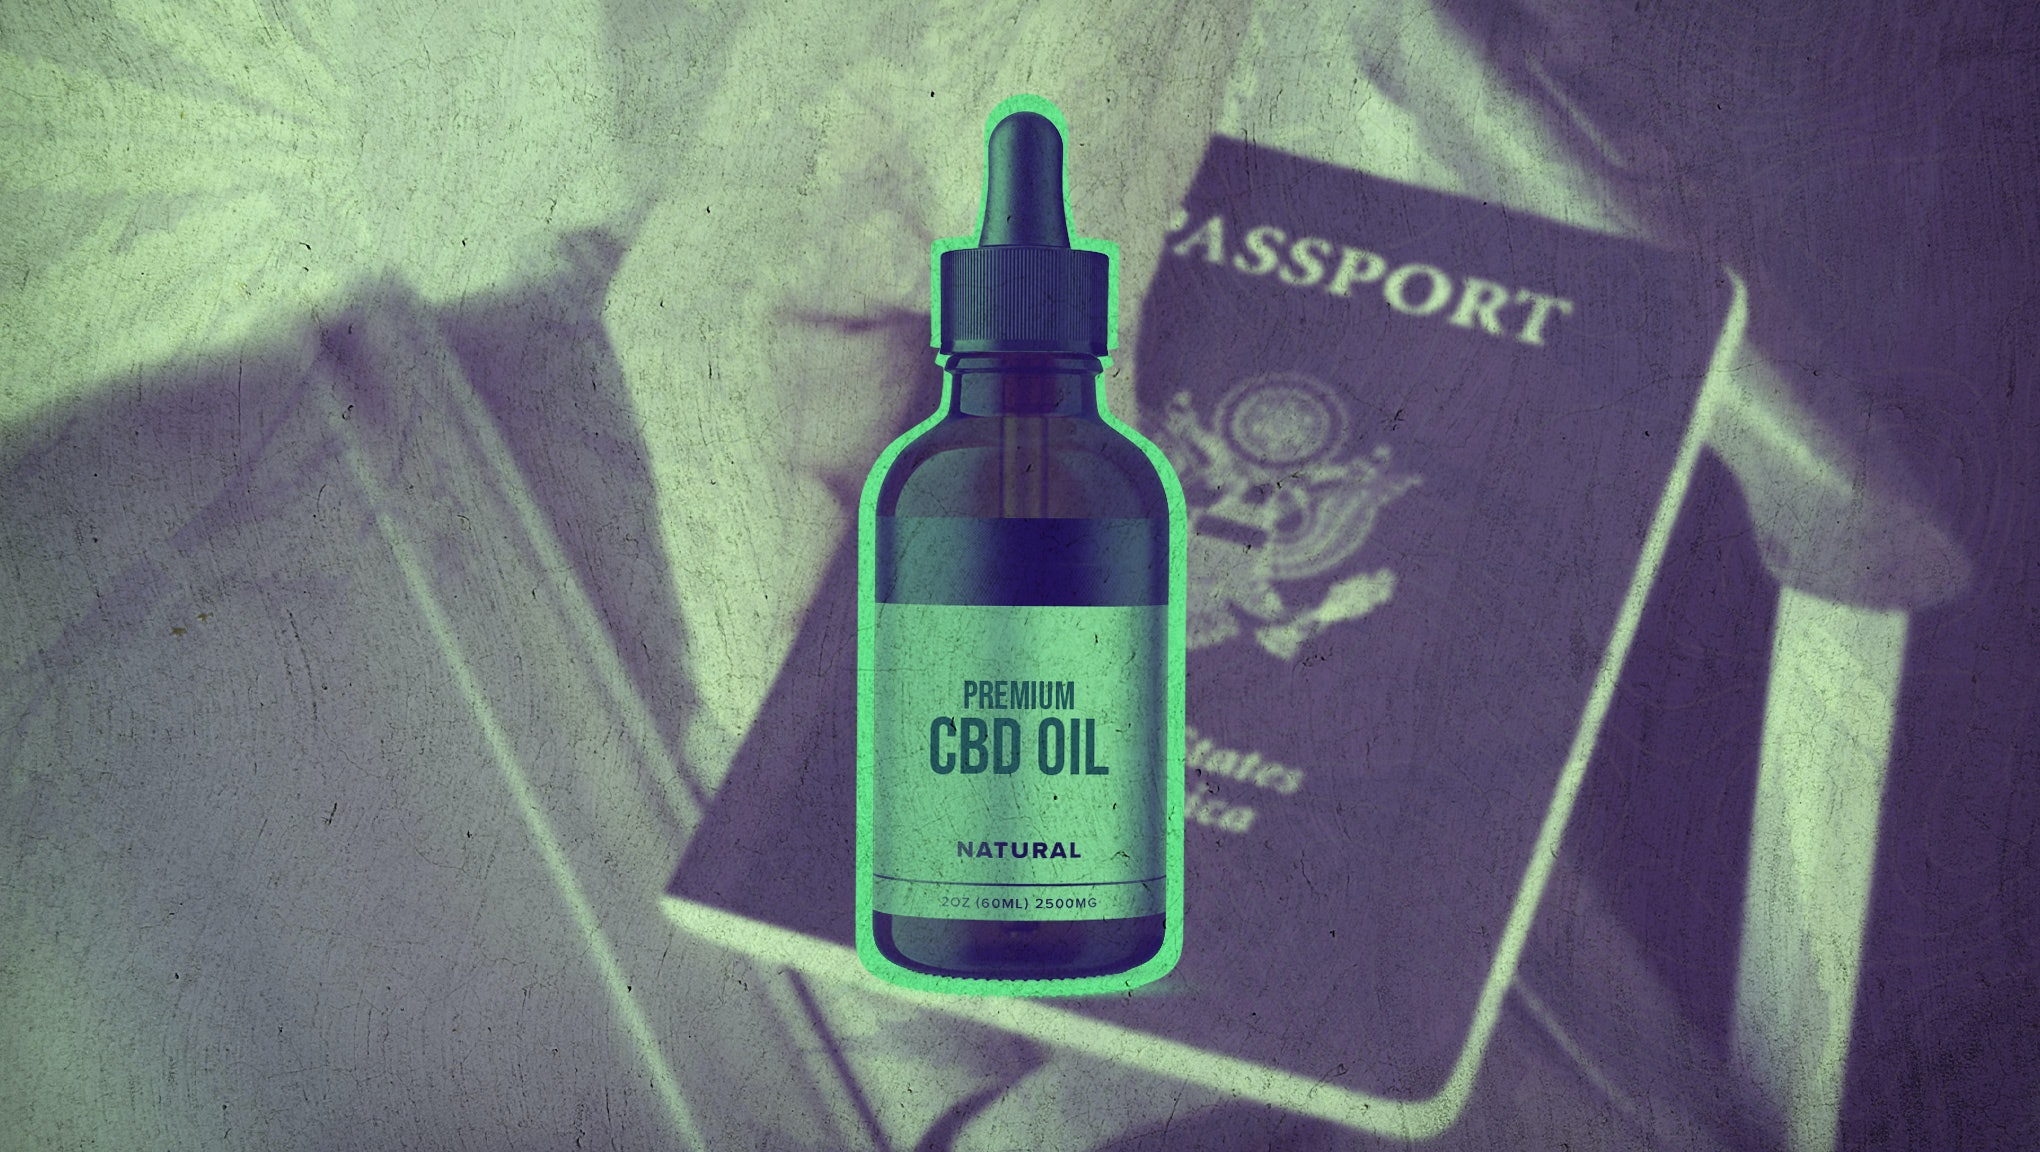 Travelling With CBD Products: Can I Travel With CBD Oil?